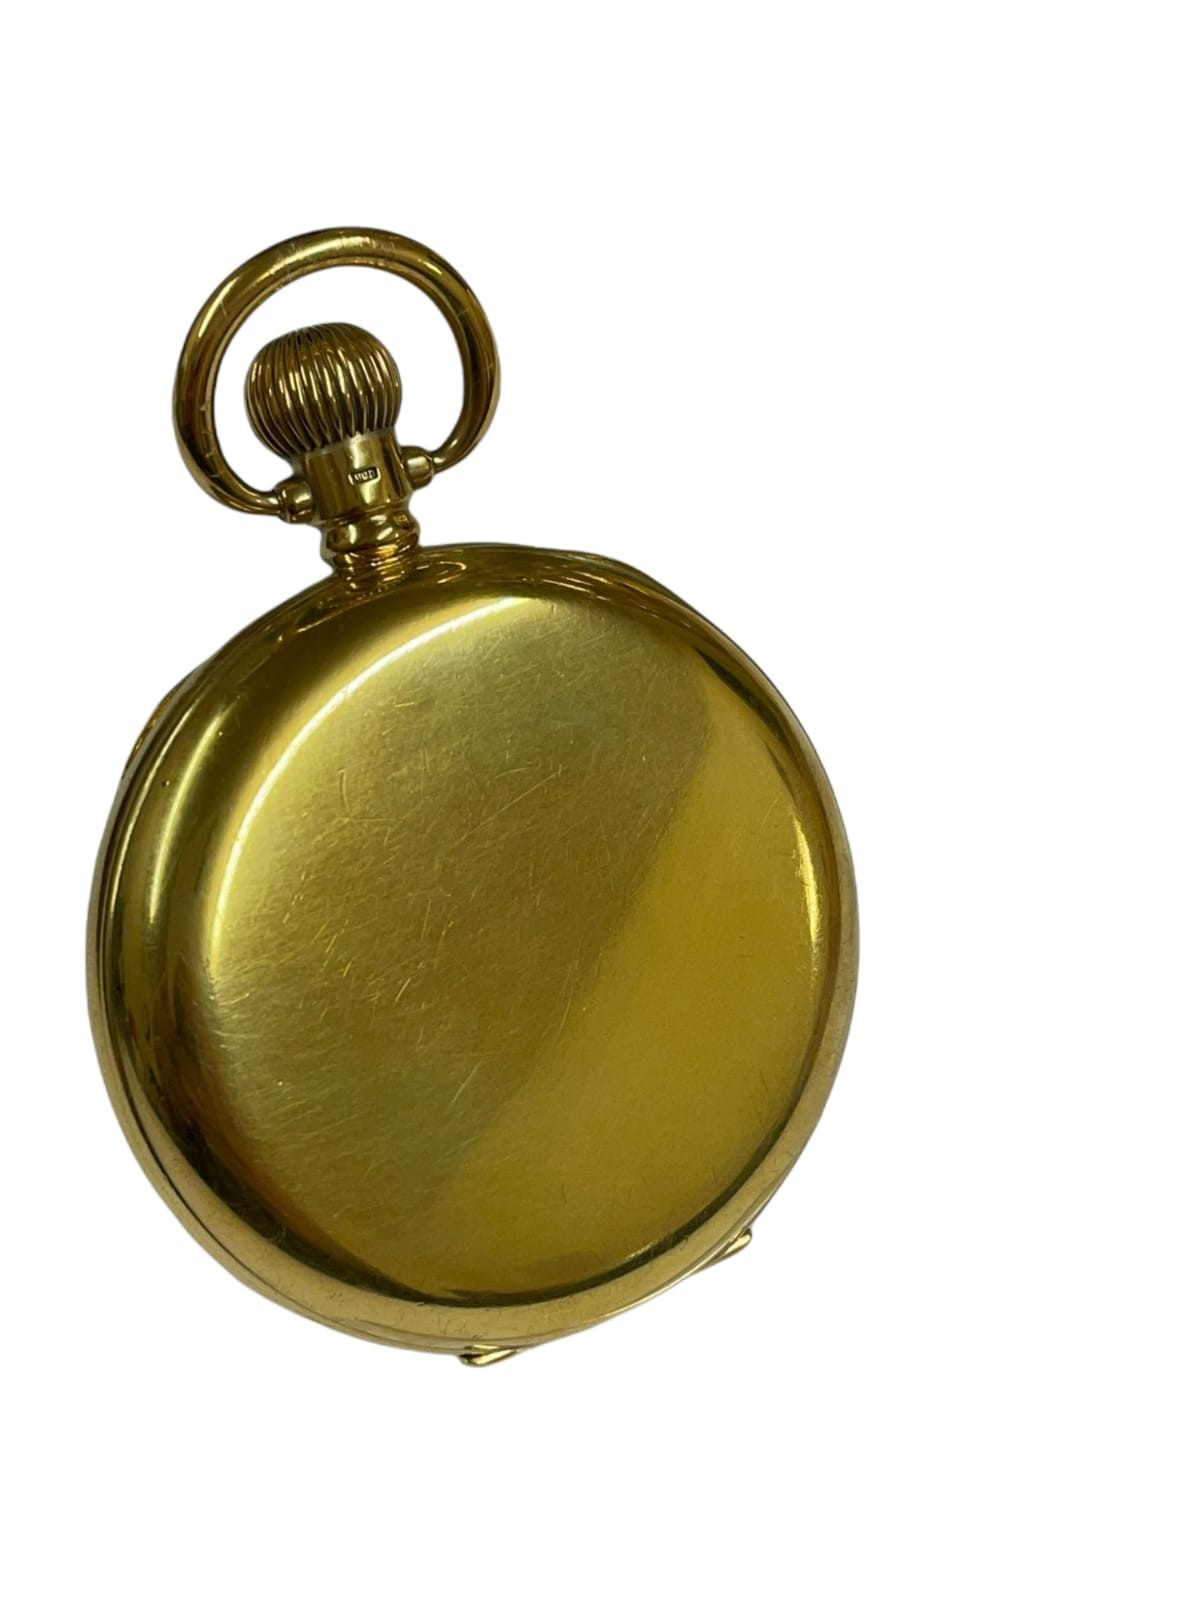 Vintage Masonic Rolex pocket watch with stand good condition and good working order but no - Image 9 of 21